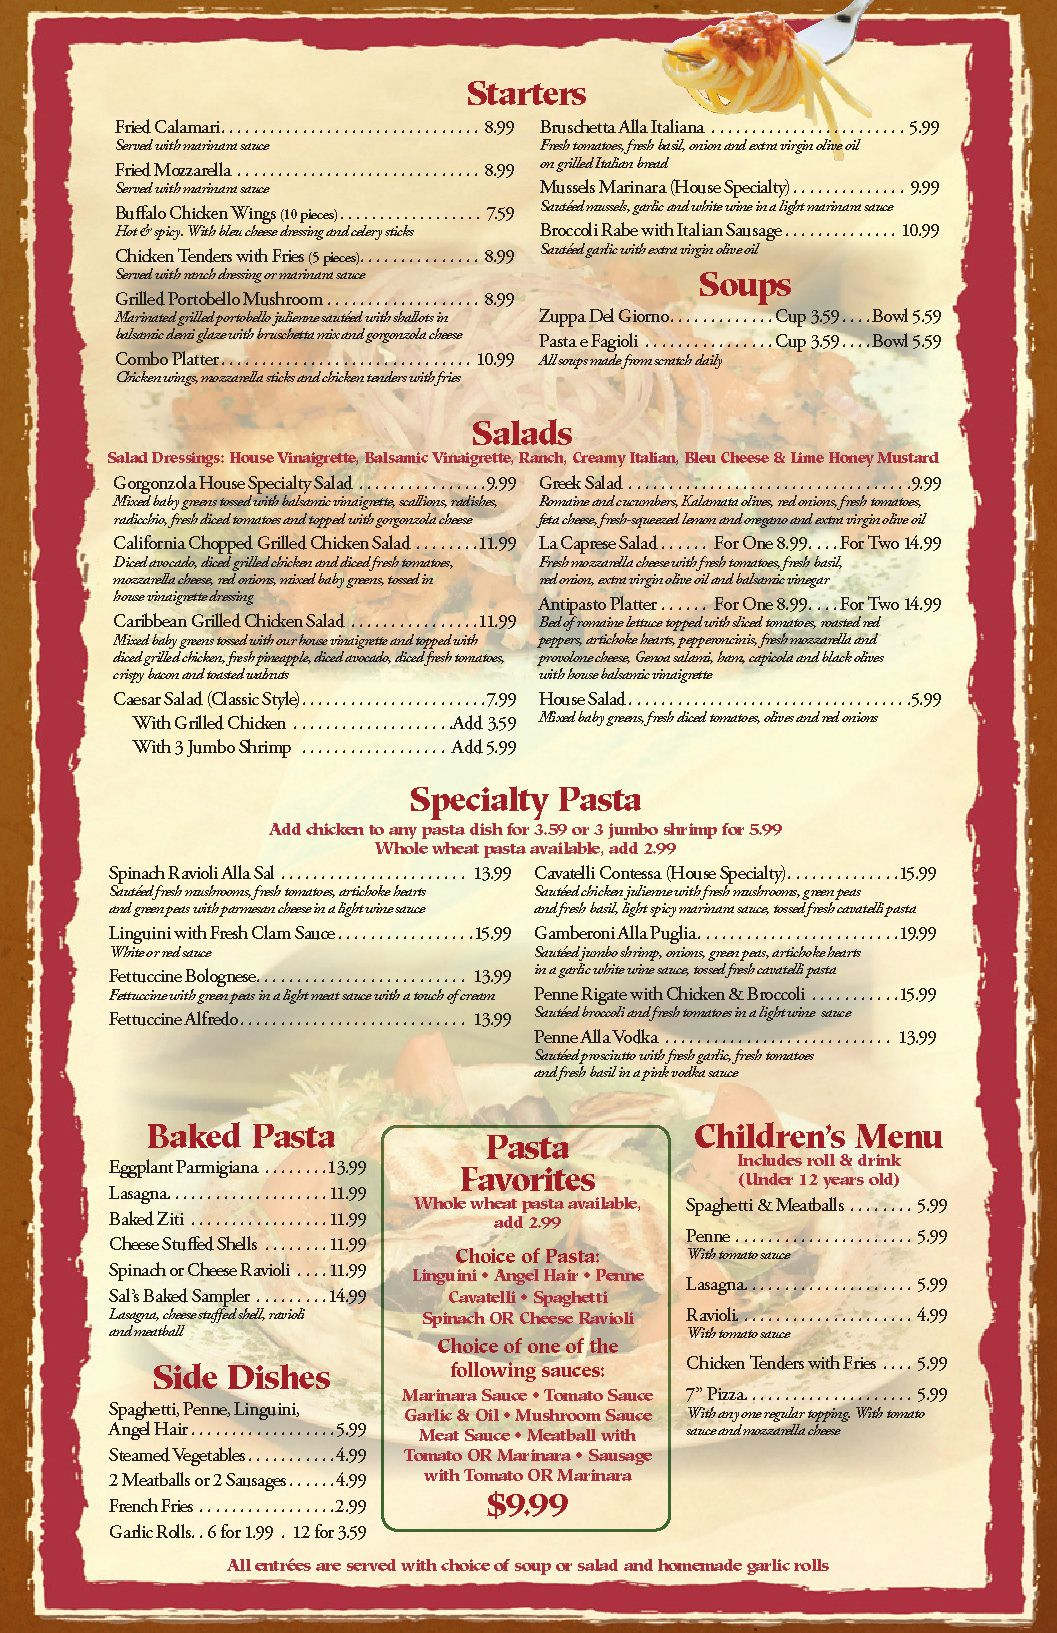 Free Blank Restaurant Menu Templates – Free Kids Menu Templates